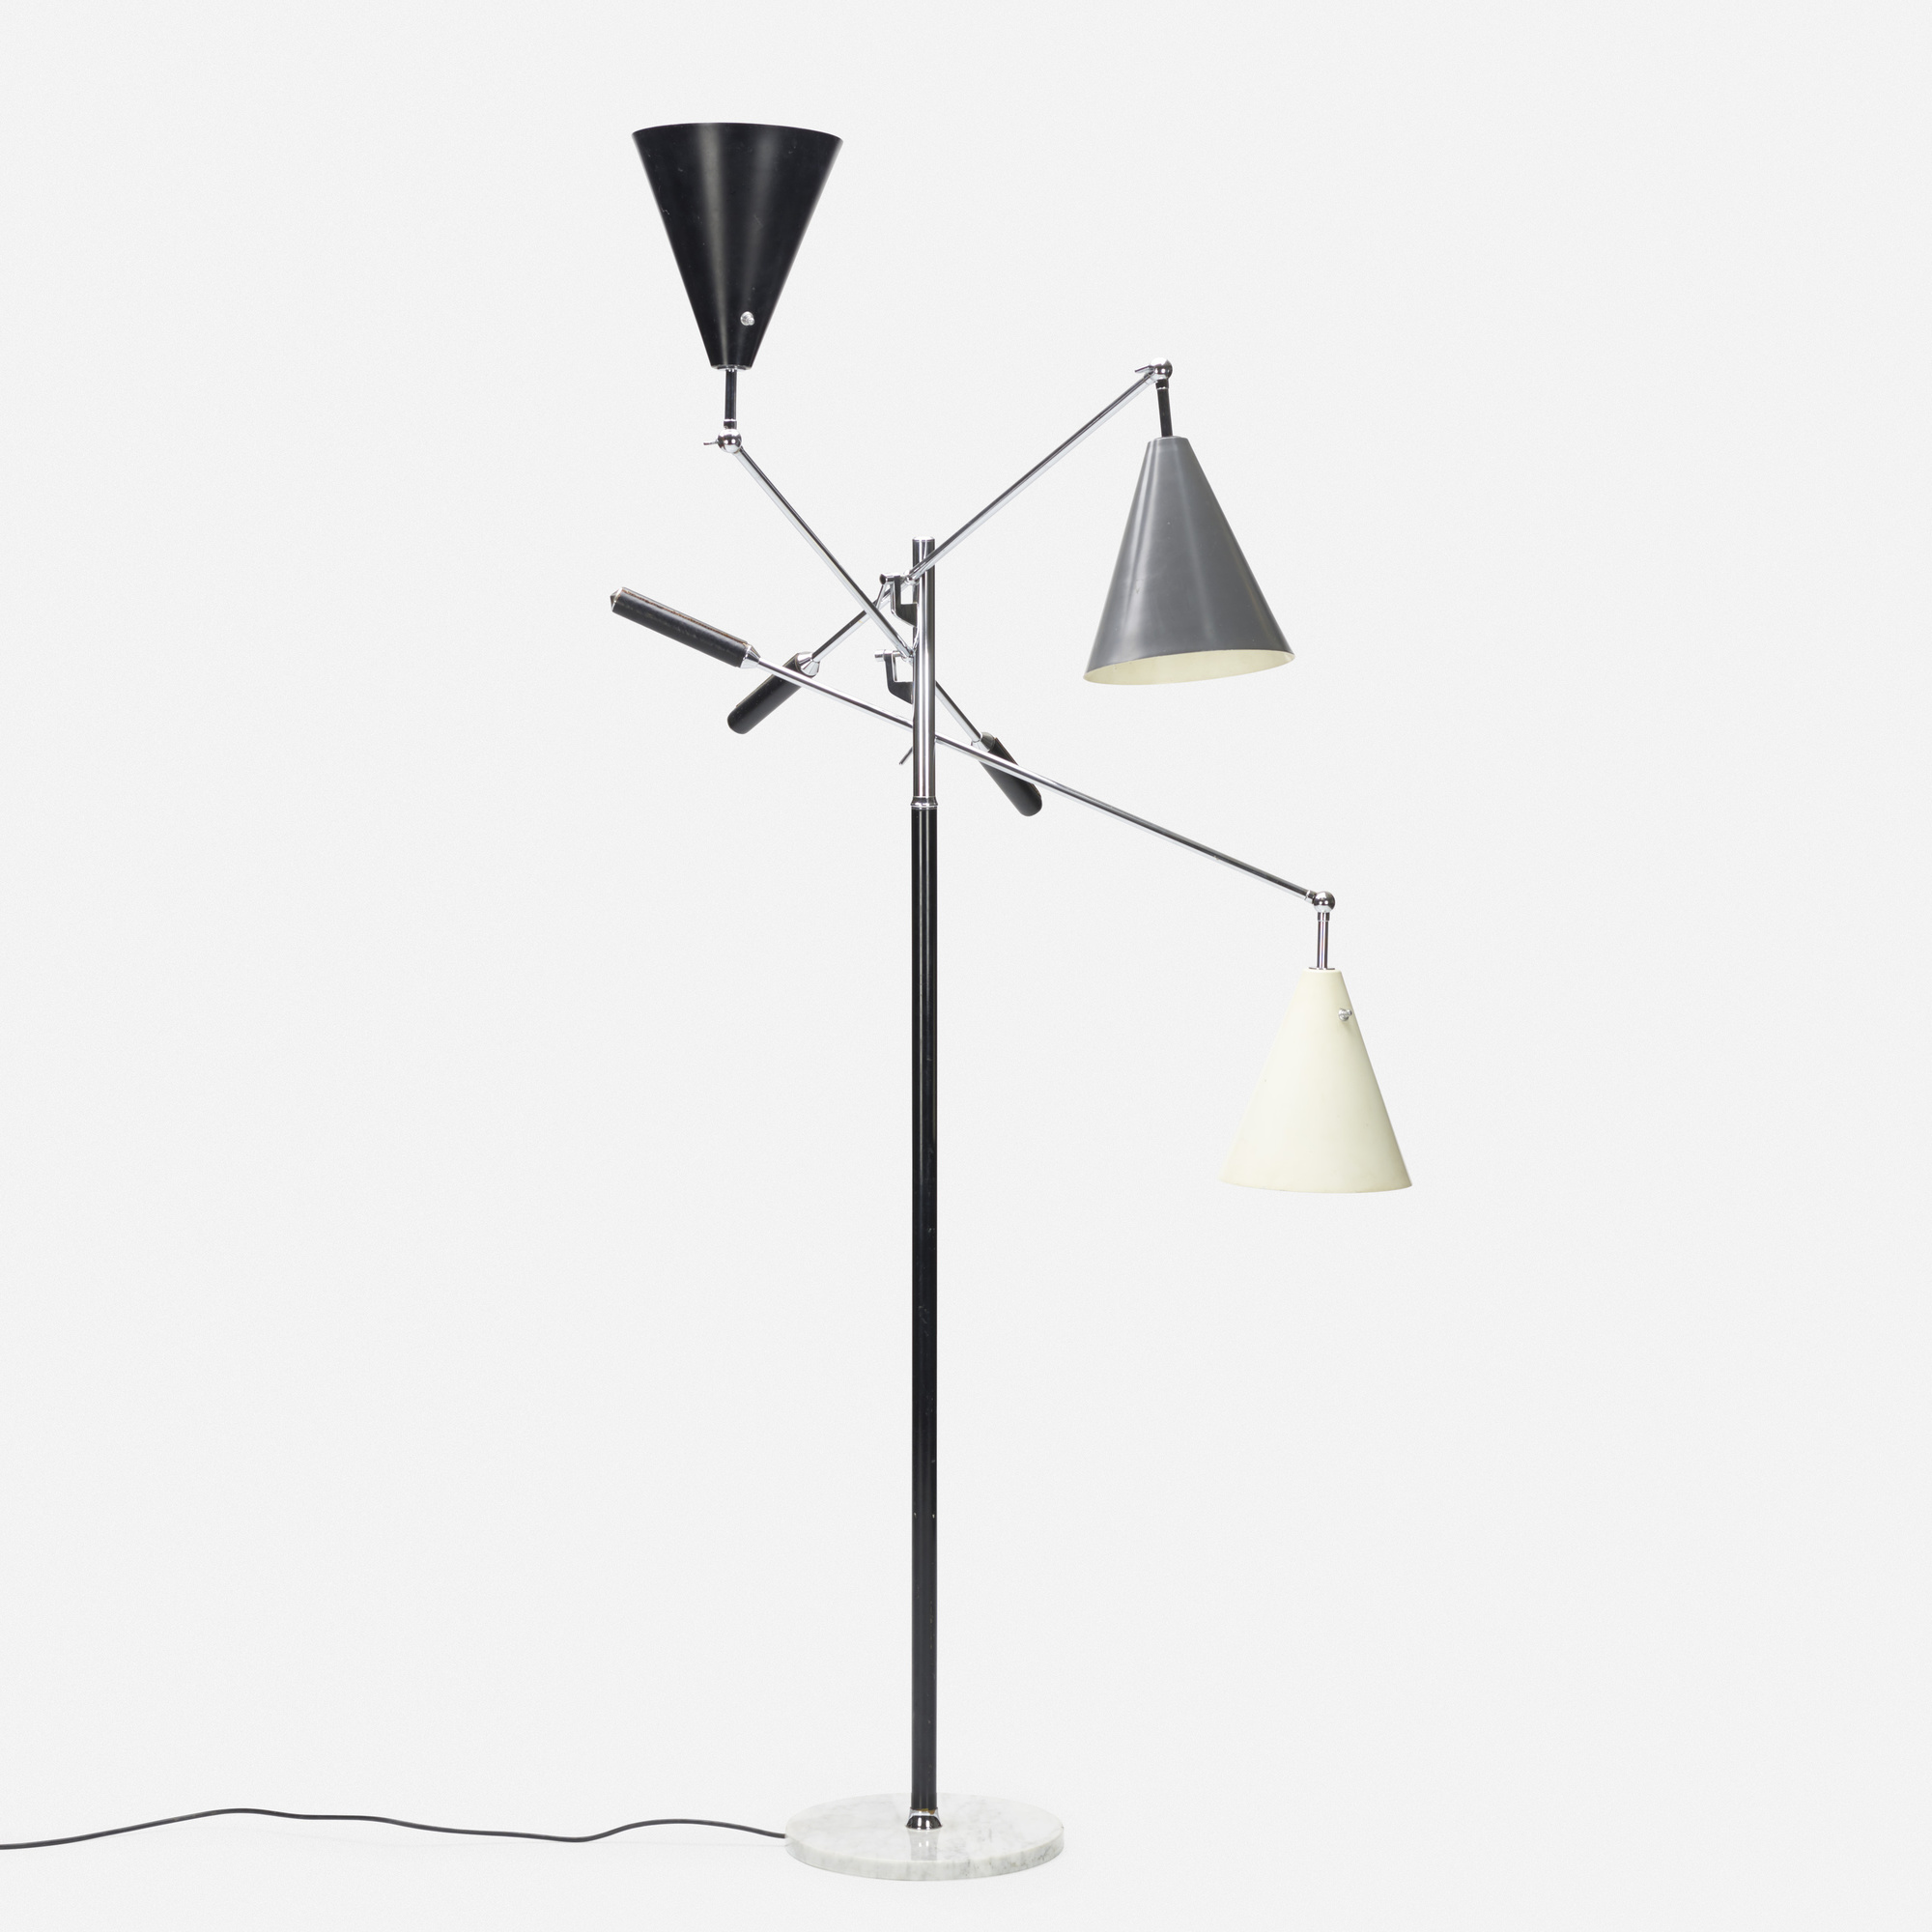 389: Italian / Three Arm floor lamp (1 of 3)